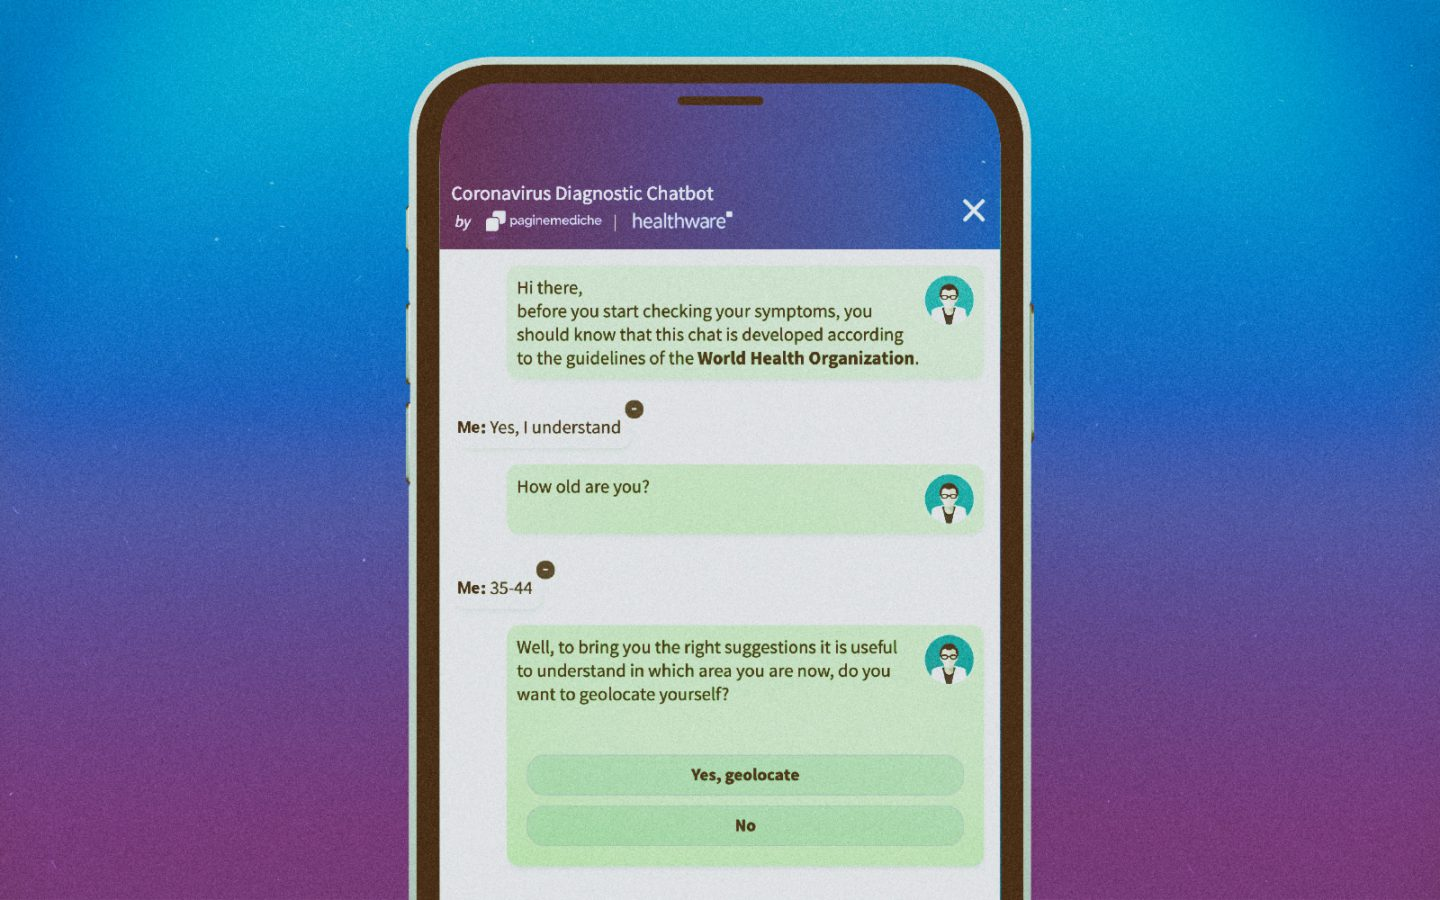 The Coronavirus Diagnostic Chatbot by Paginemediche is now available in multiple languages